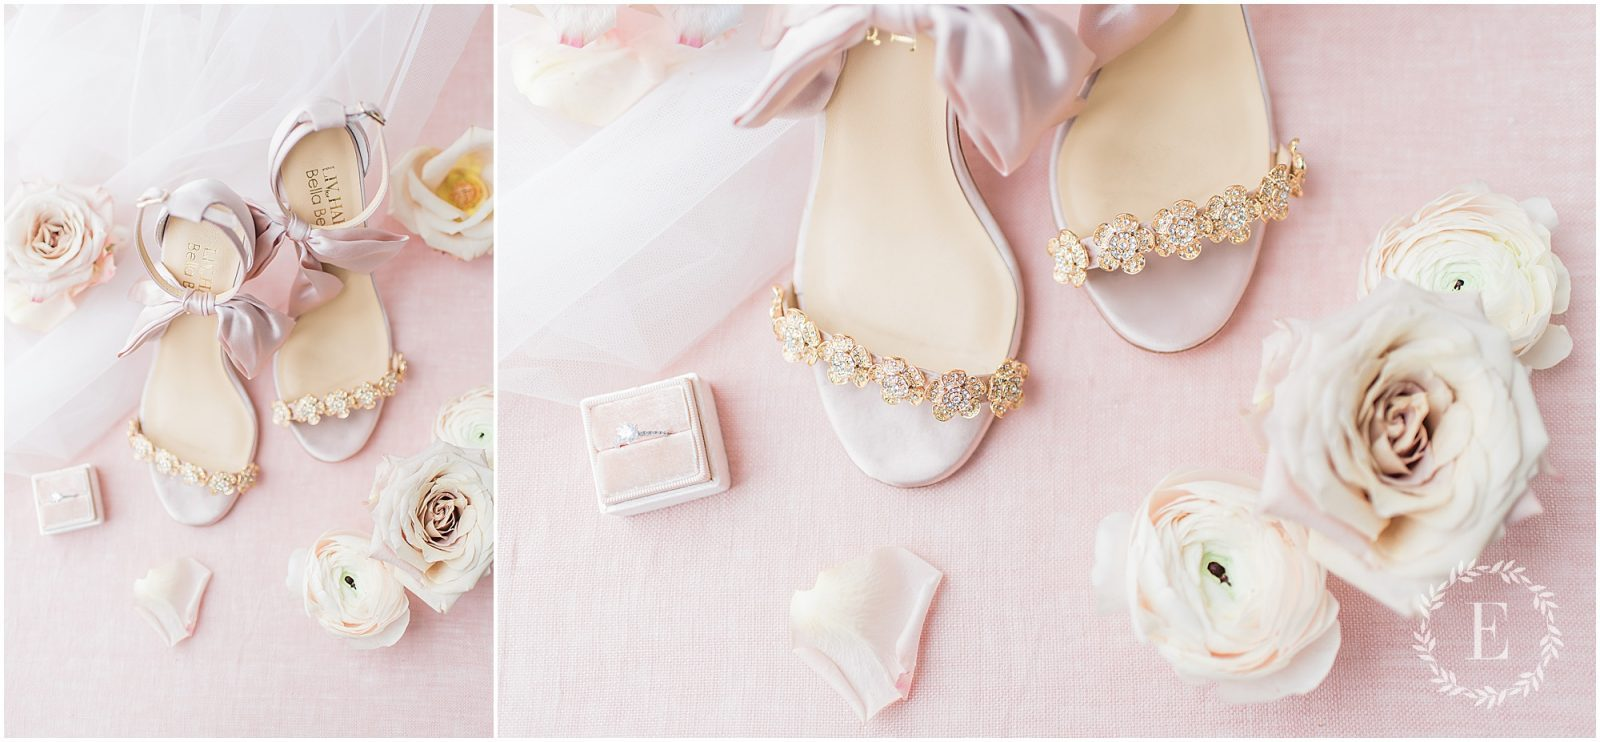 50 - Bella Belle for Fairy Dreams Bridal - PhotosbyEmmaH 2019 - pink satin wedding sandals - pink bow